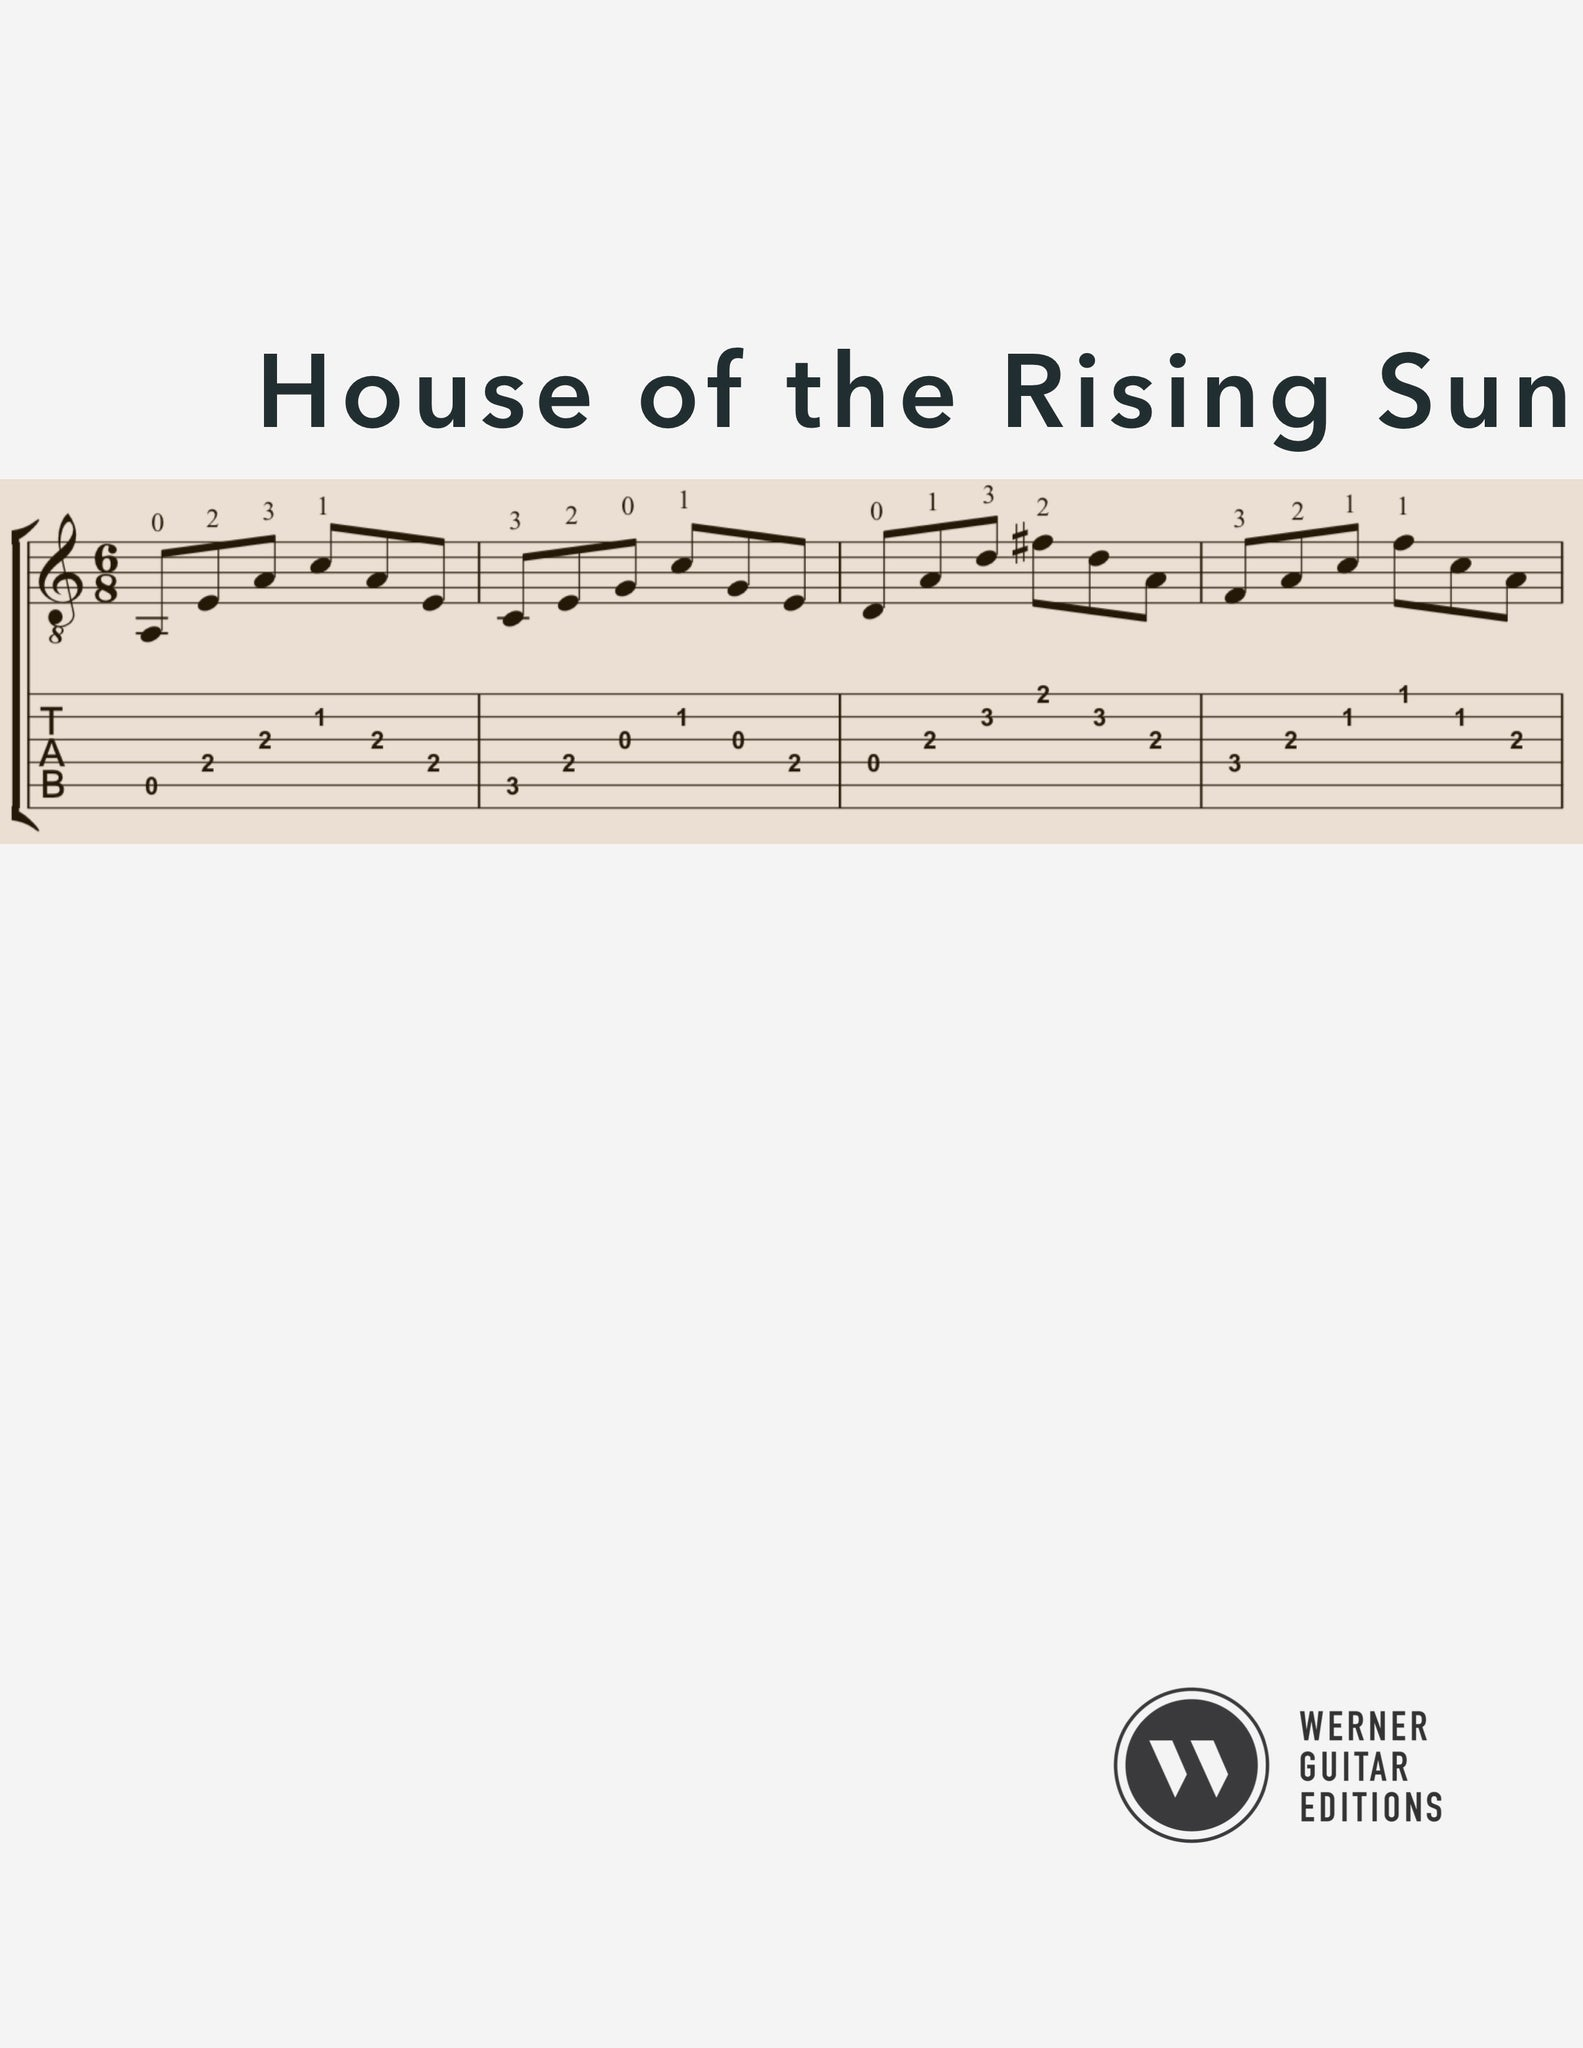 House of the Rising Sun for Guitar (PDF)